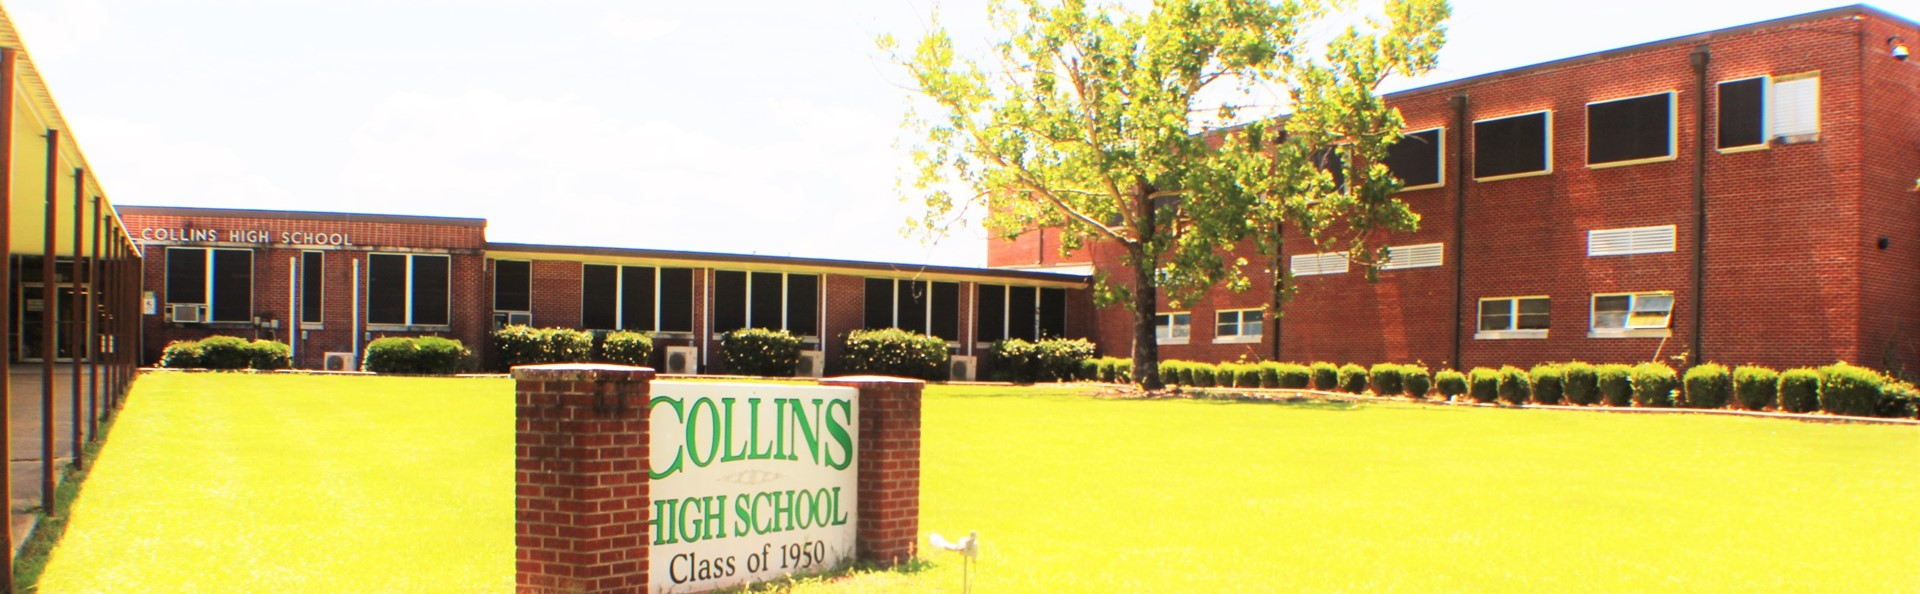 Collins High